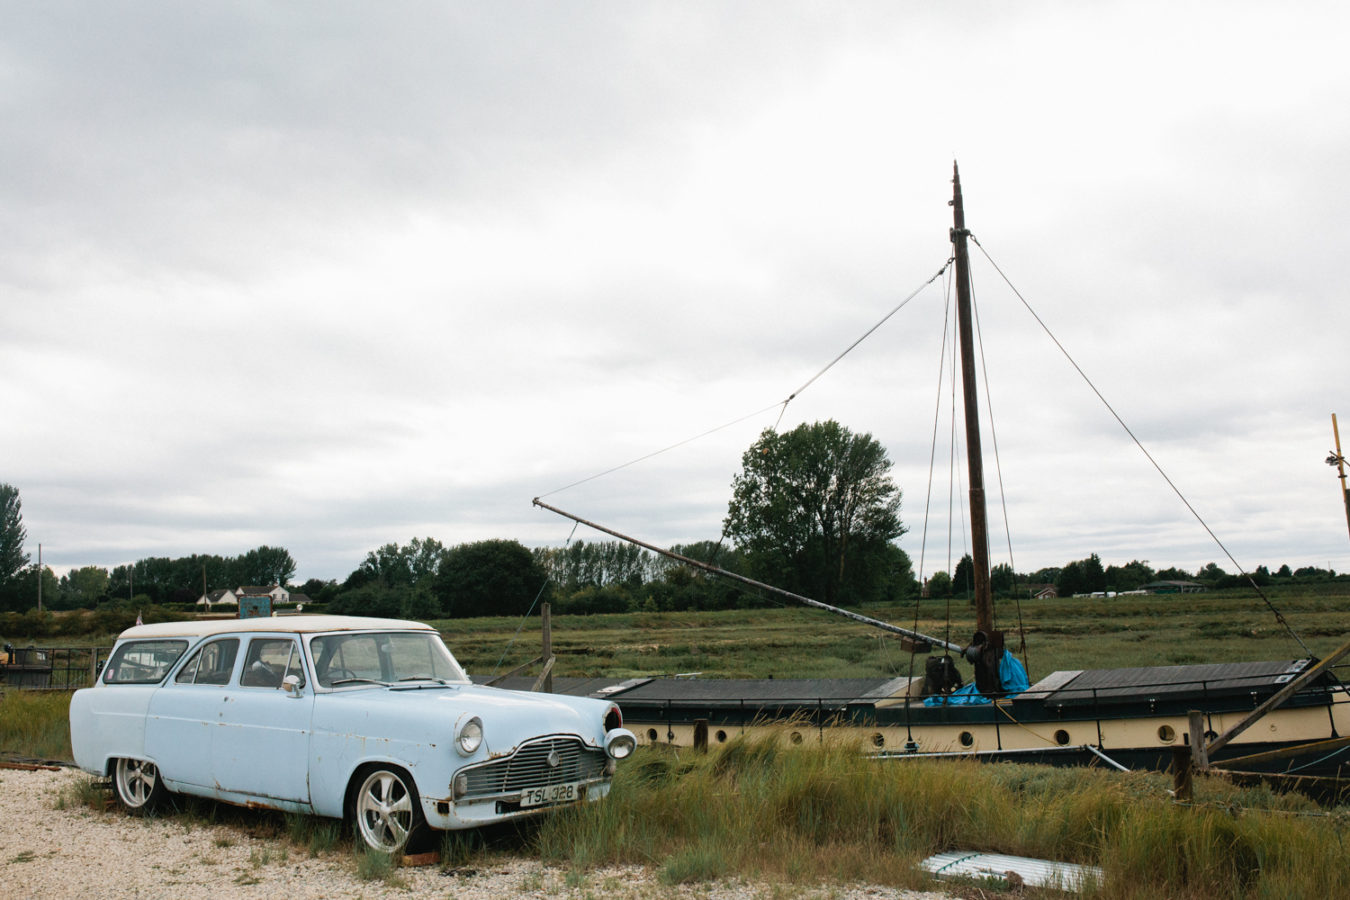 An old thames barge boat at the Oak Grove wedding venue in North Kent